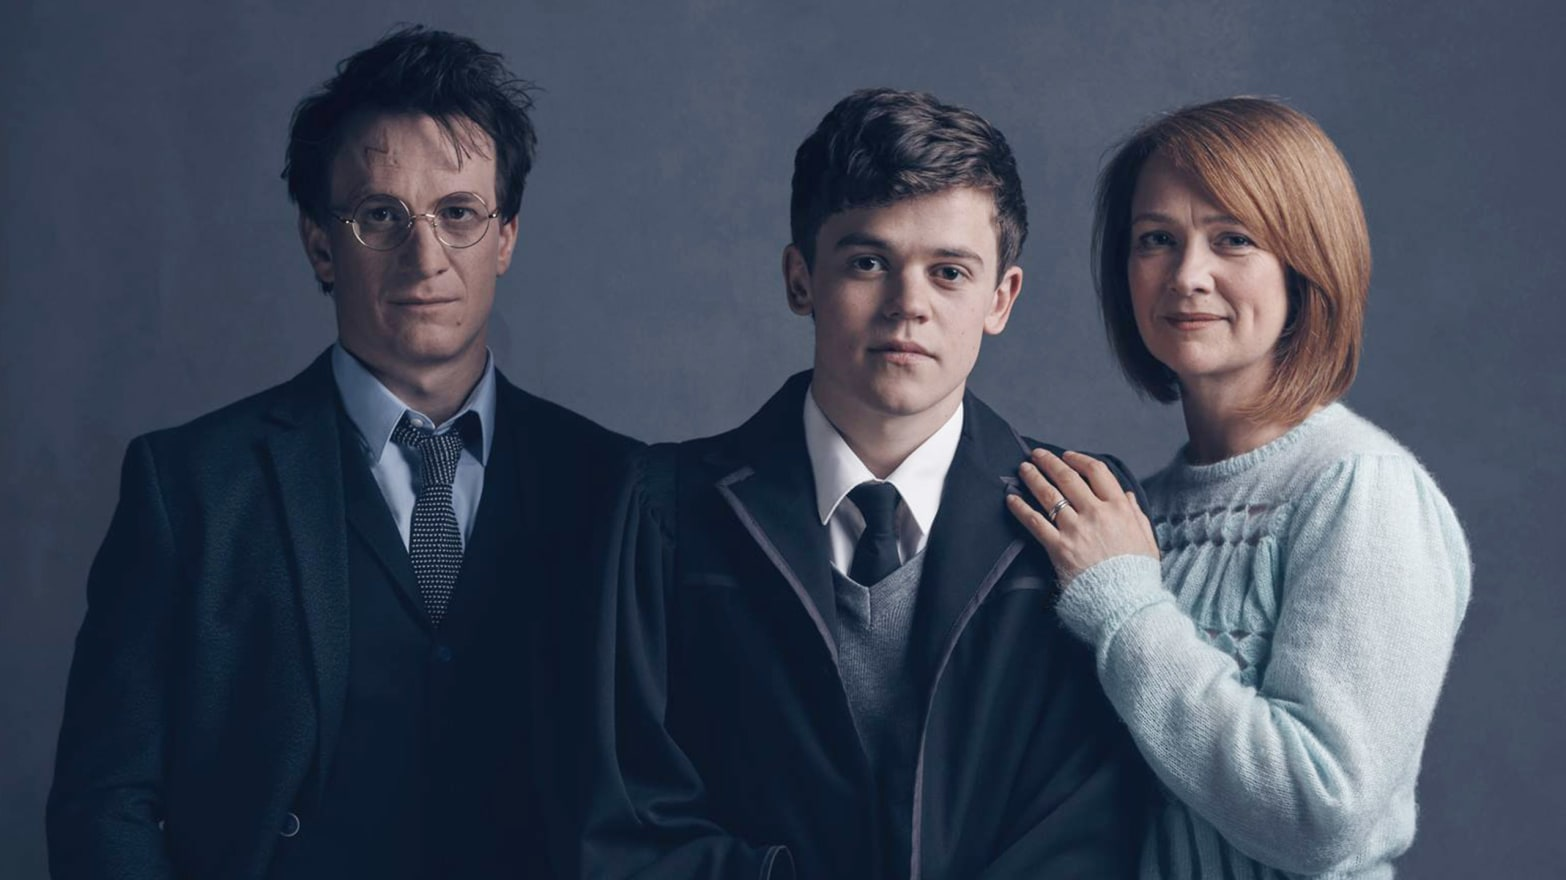 We Need to Talk About the Ending to 'Harry Potter and the Cursed Child'